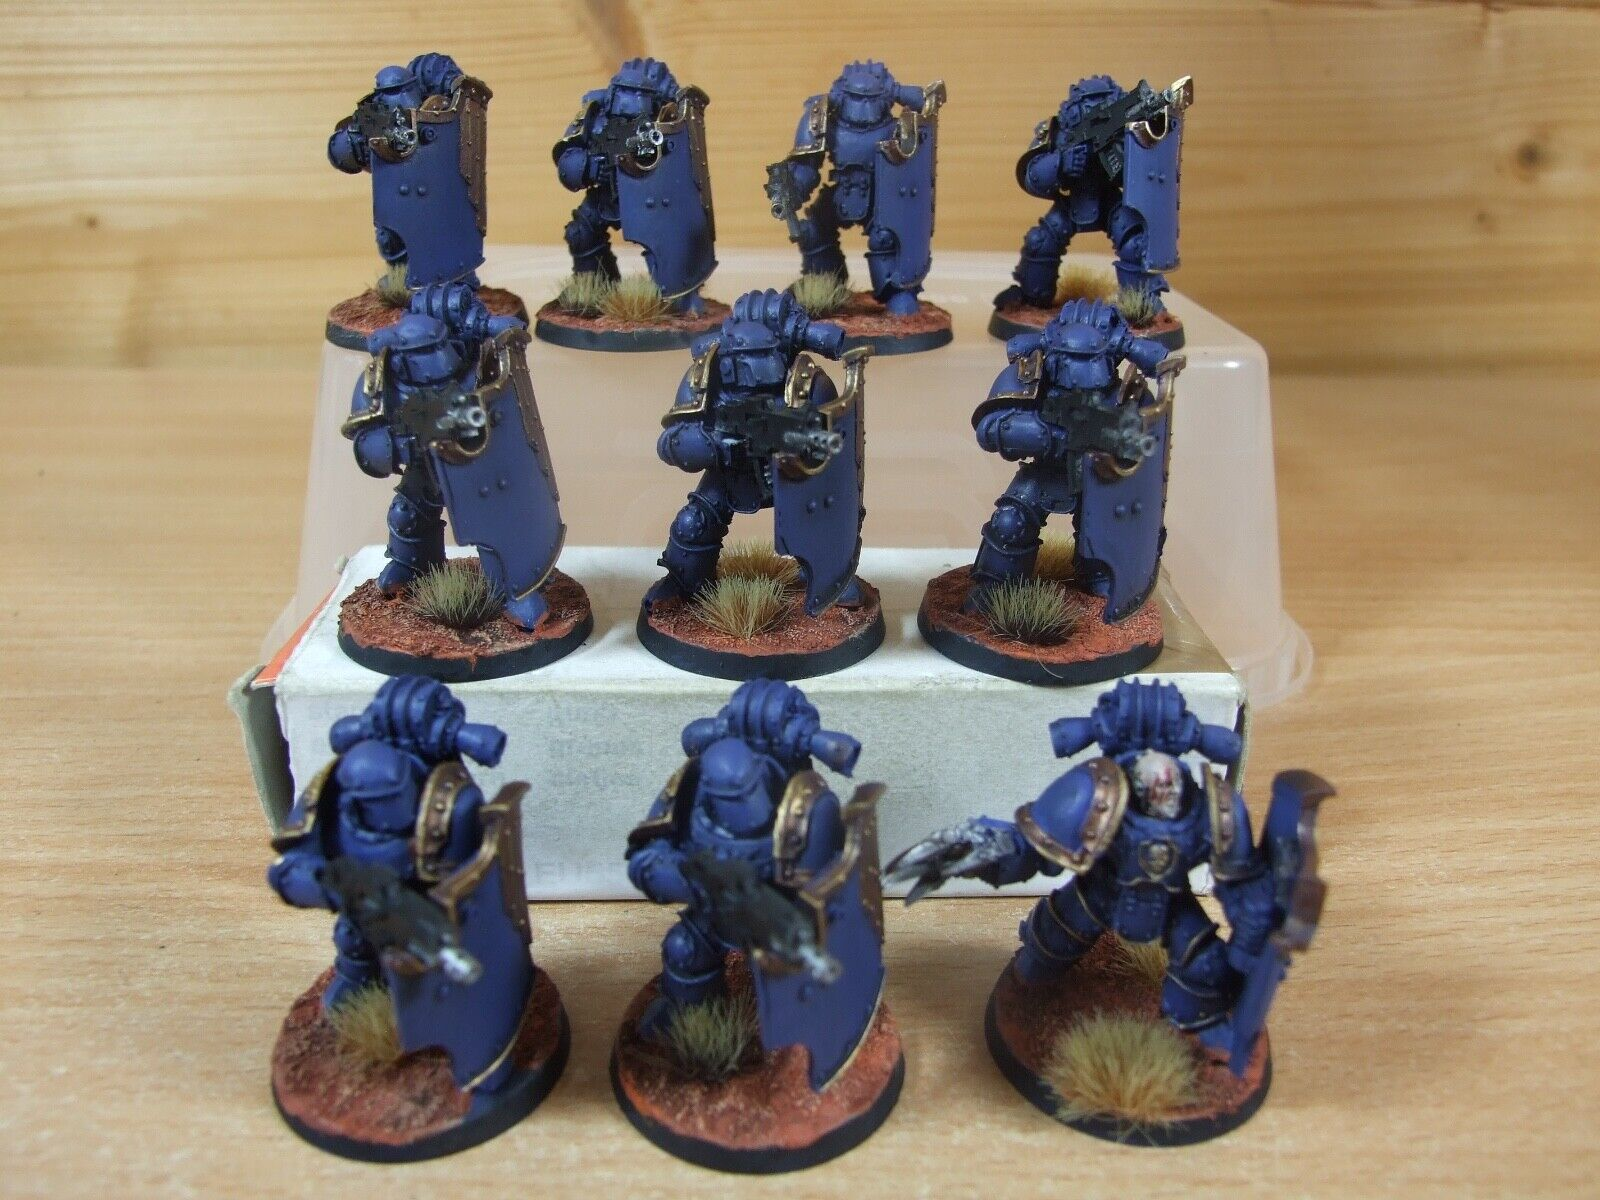 10 FORGEWORLD ULTRAMARINE BRERS PAINTED PAINTED (456)